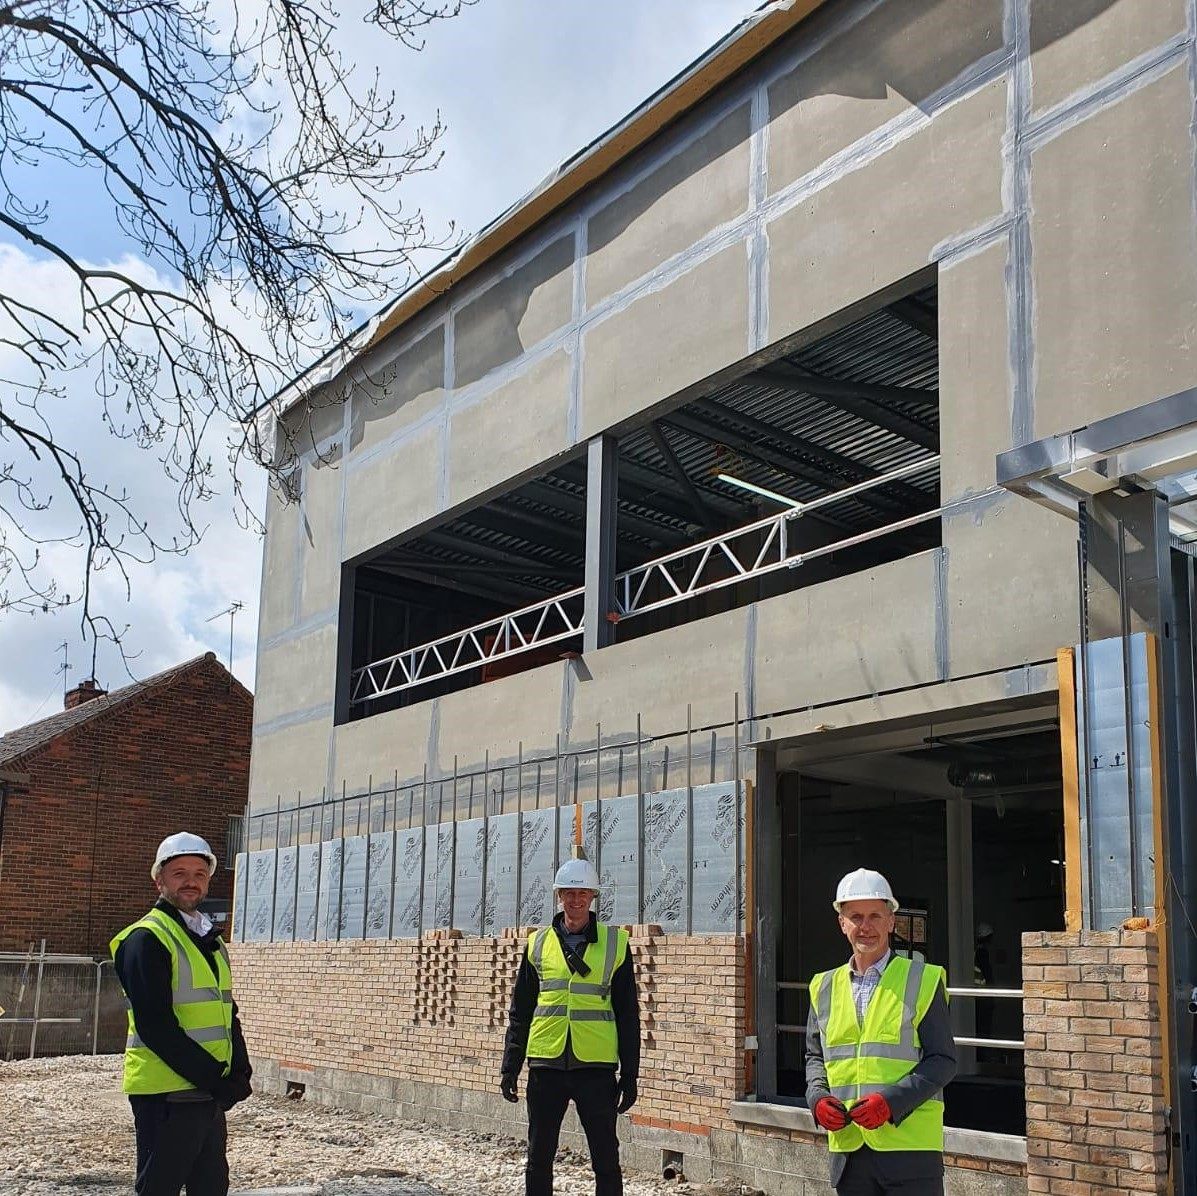 A milestone in the construction of the state of the art West Hull Health Hub